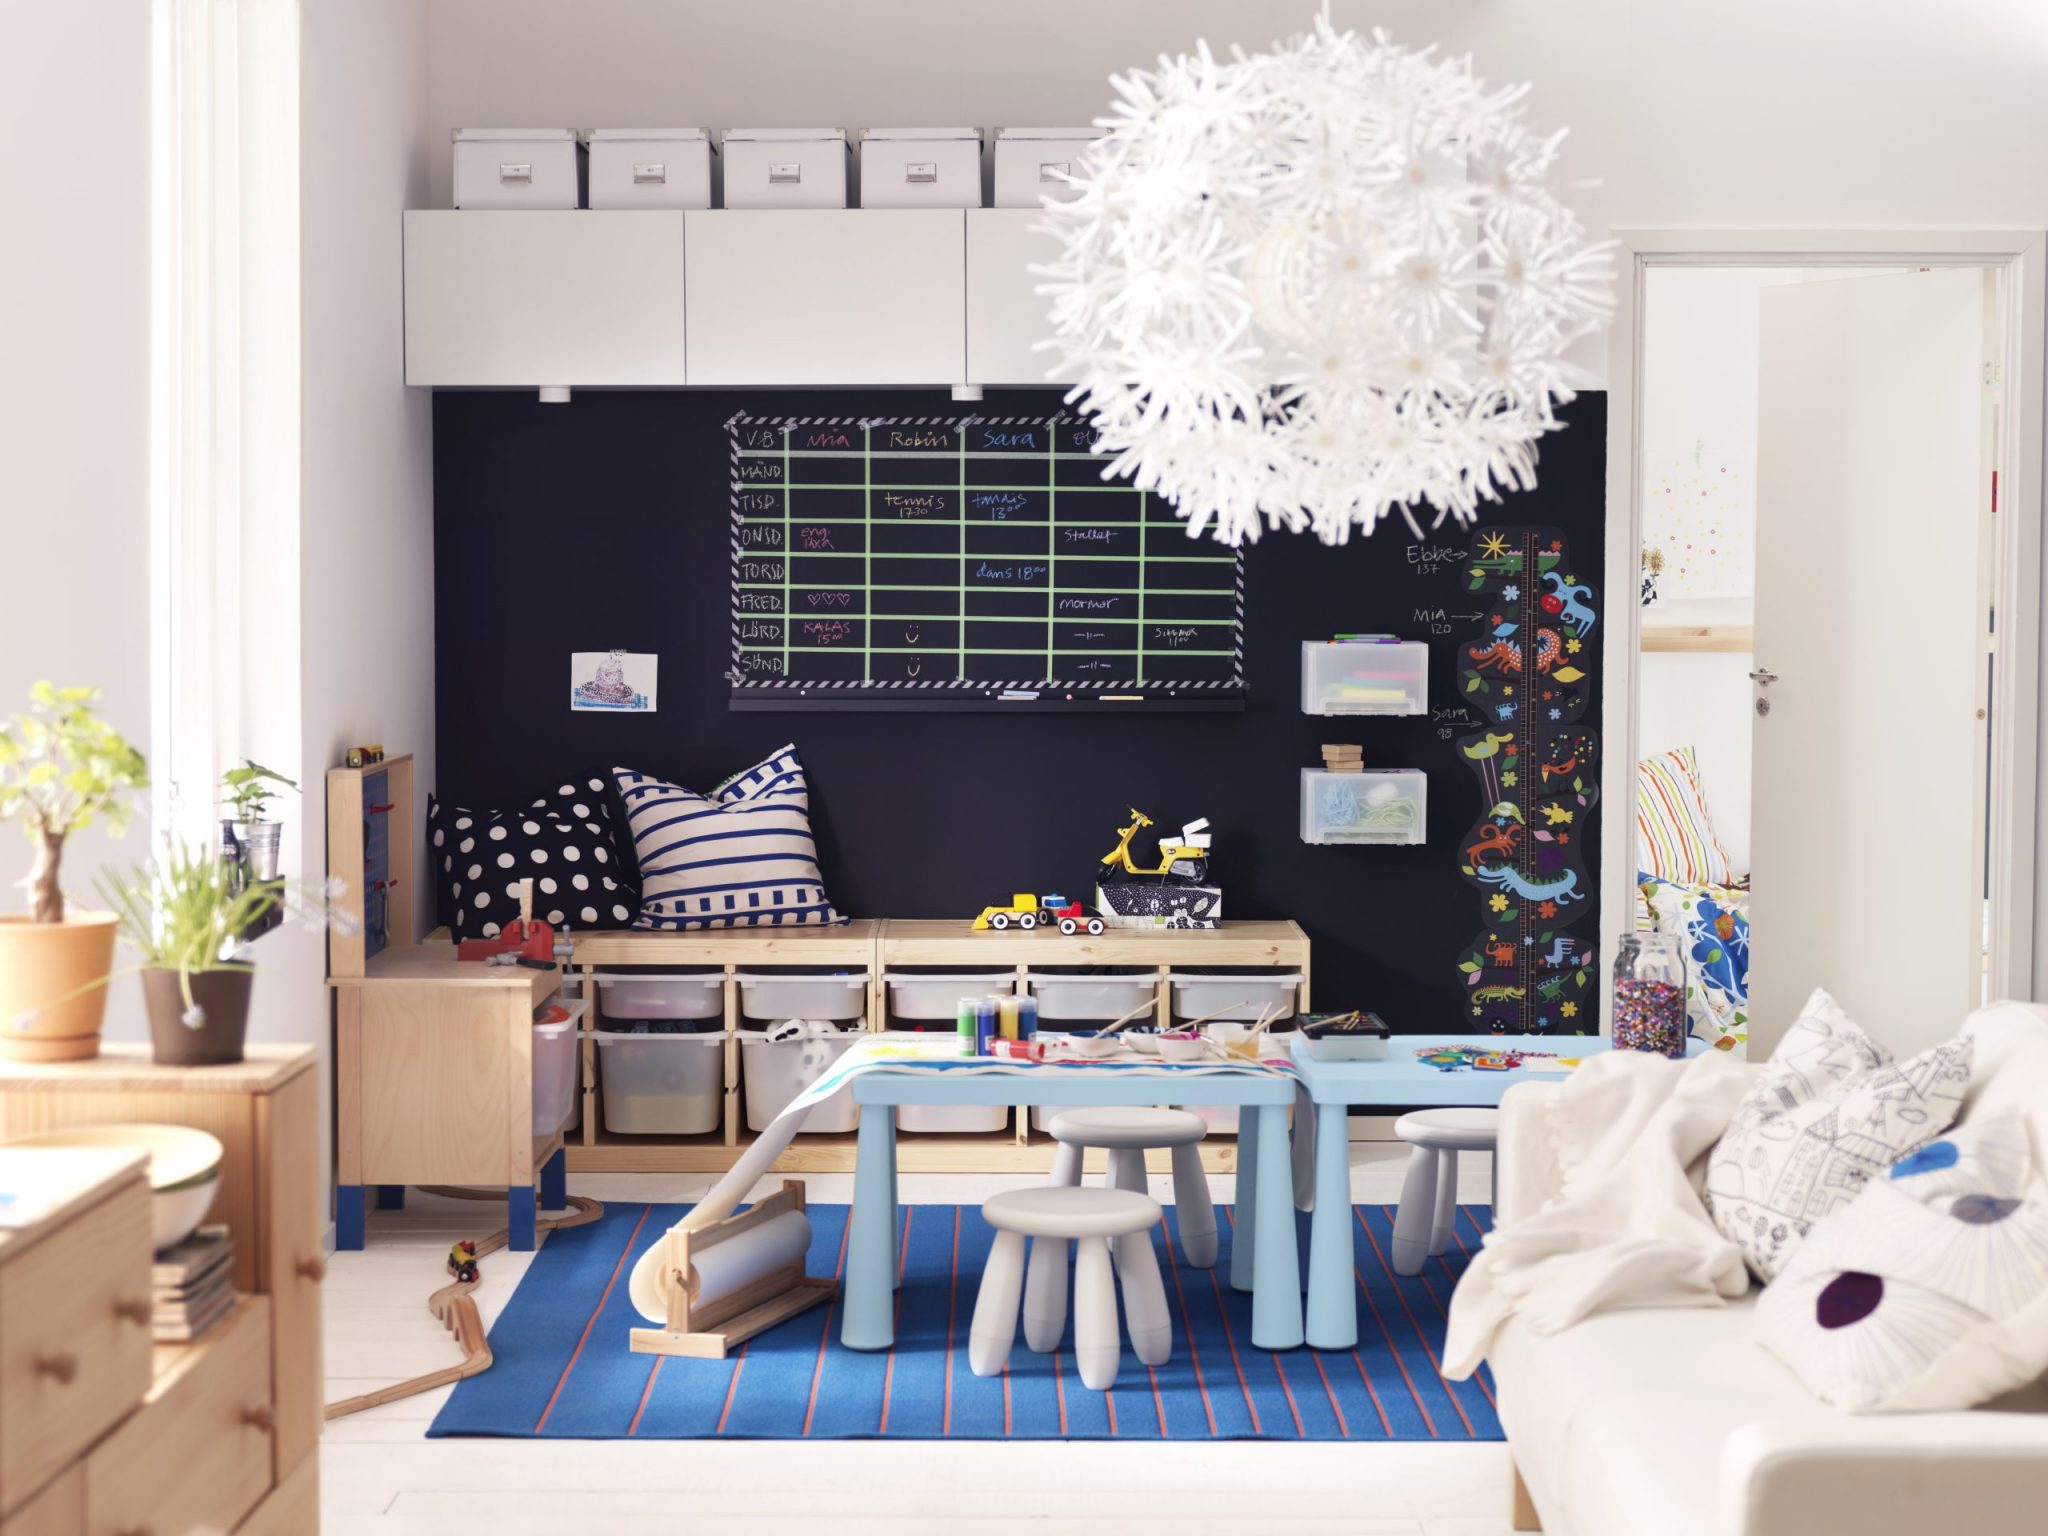 living room design with play area